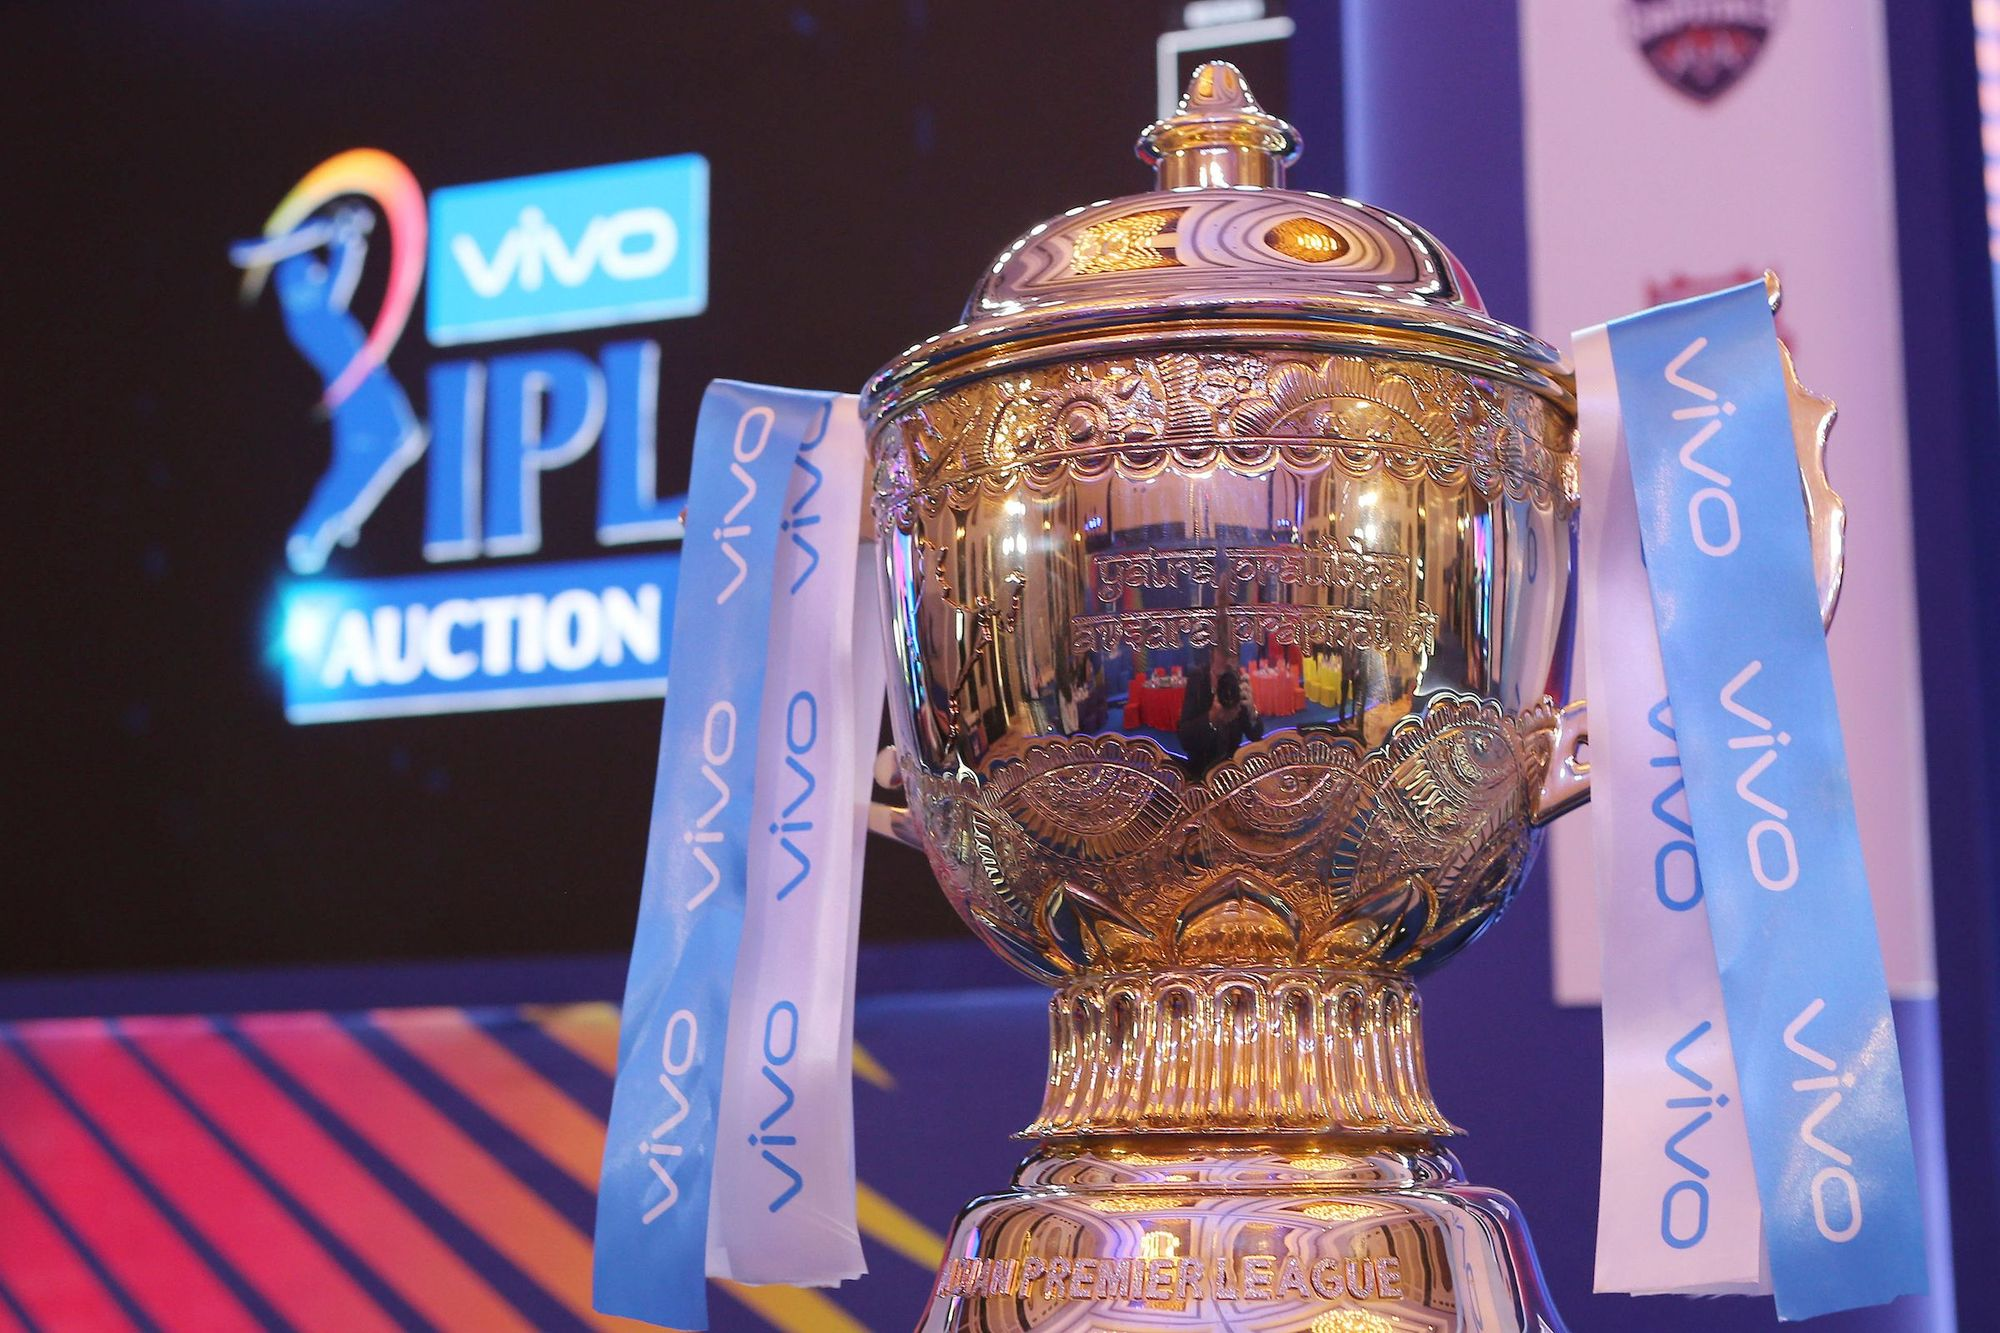 The IPL 2020 has been postponed to April 15 amid coronavirus outbreak